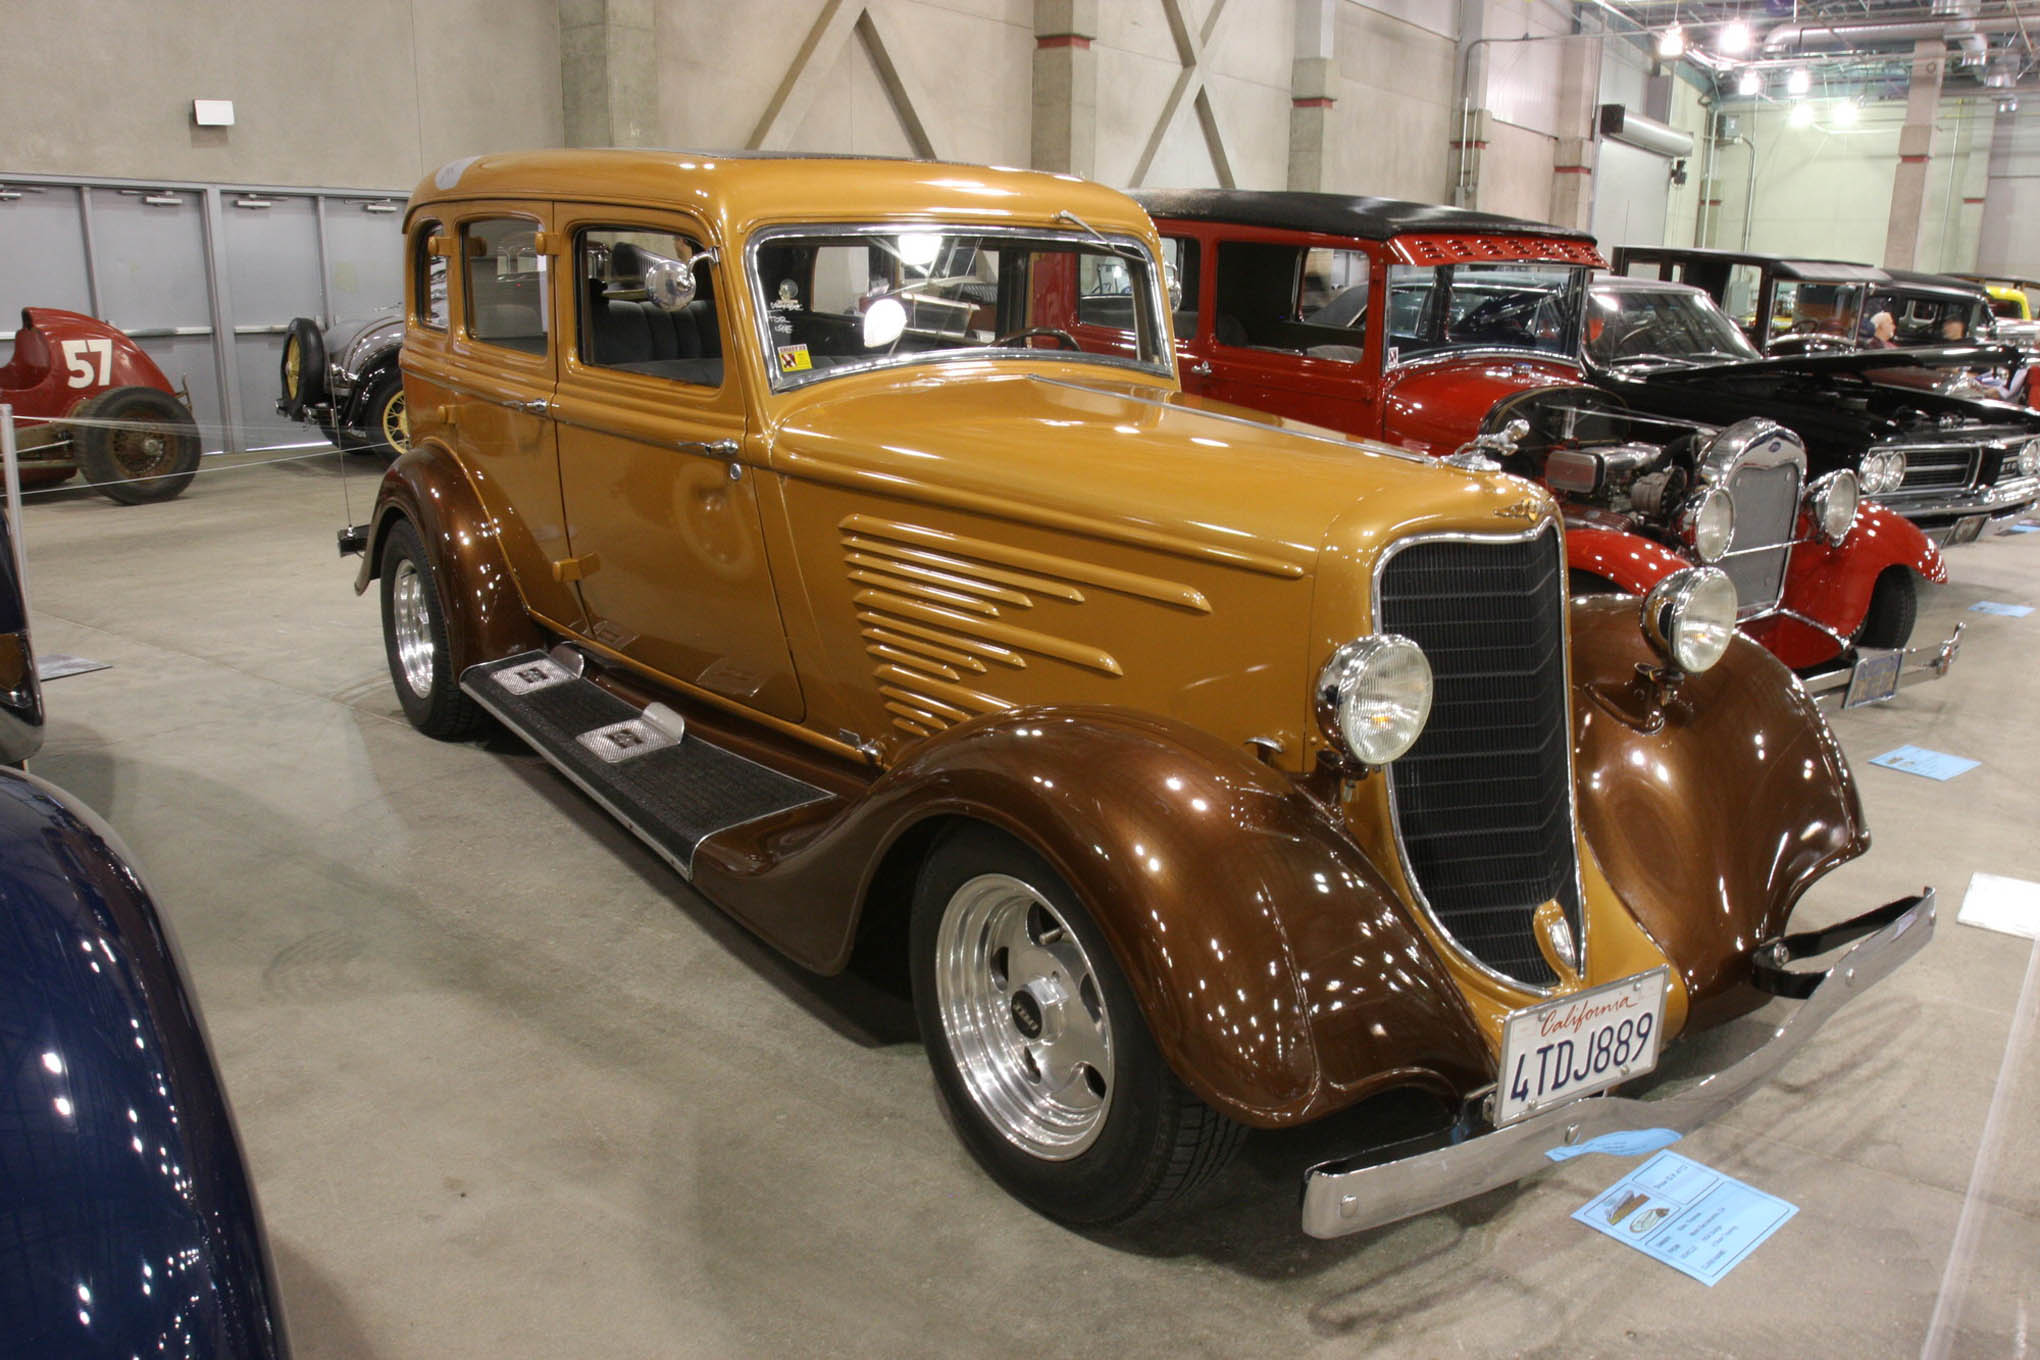 Here's another beauty for early Dodge fans. This 1934 Touring, owned by Thomas Kale from West Sacramento, looks sweet with that butterscotch and root beer paintjob.